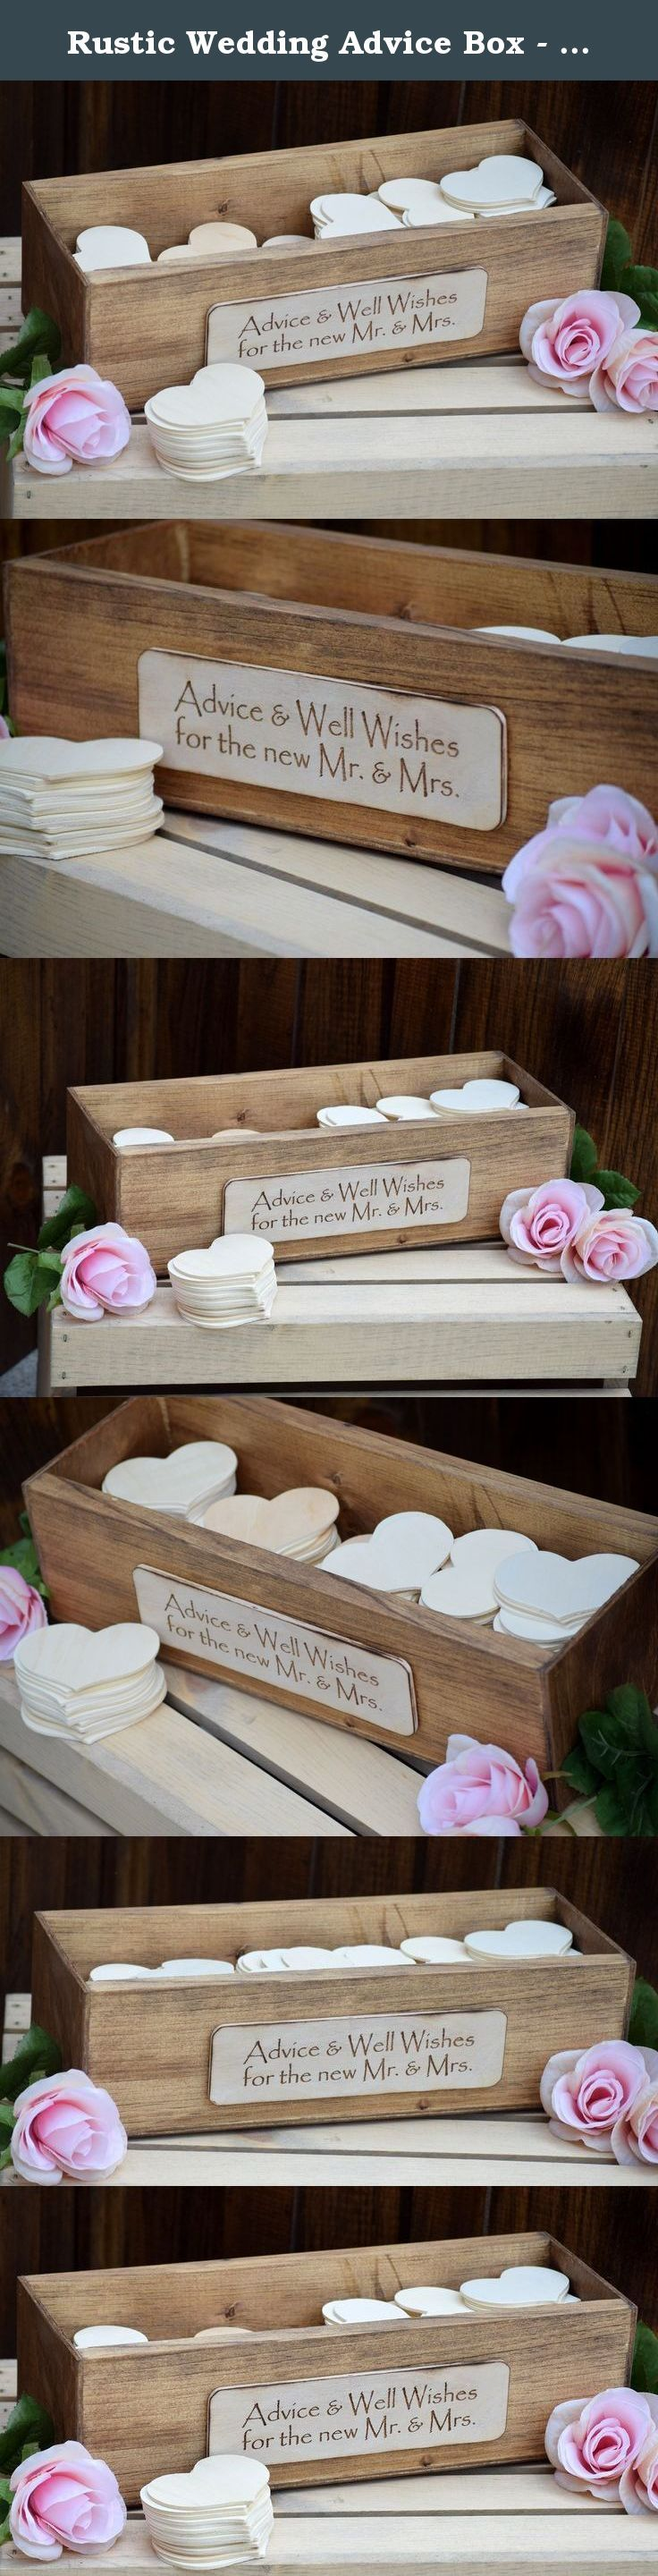 """Rustic Wedding Advice Box - Wishing Well - Rustic Wedding - Shabby Chic Wedding - Guest Book - Wedding Wishing Well - Rustic Guest Book. Great guestbook alternative!!! This listing includes the advice box and hearts. The front plaque is engraved with """"Advice & Well Wishes for the new Mr. & Mrs."""" however you can engrave whatever you'd like. This box is great for guests to leave little notes and advice to the bride and groom. This listing includes wooden hearts that can be written on with…"""